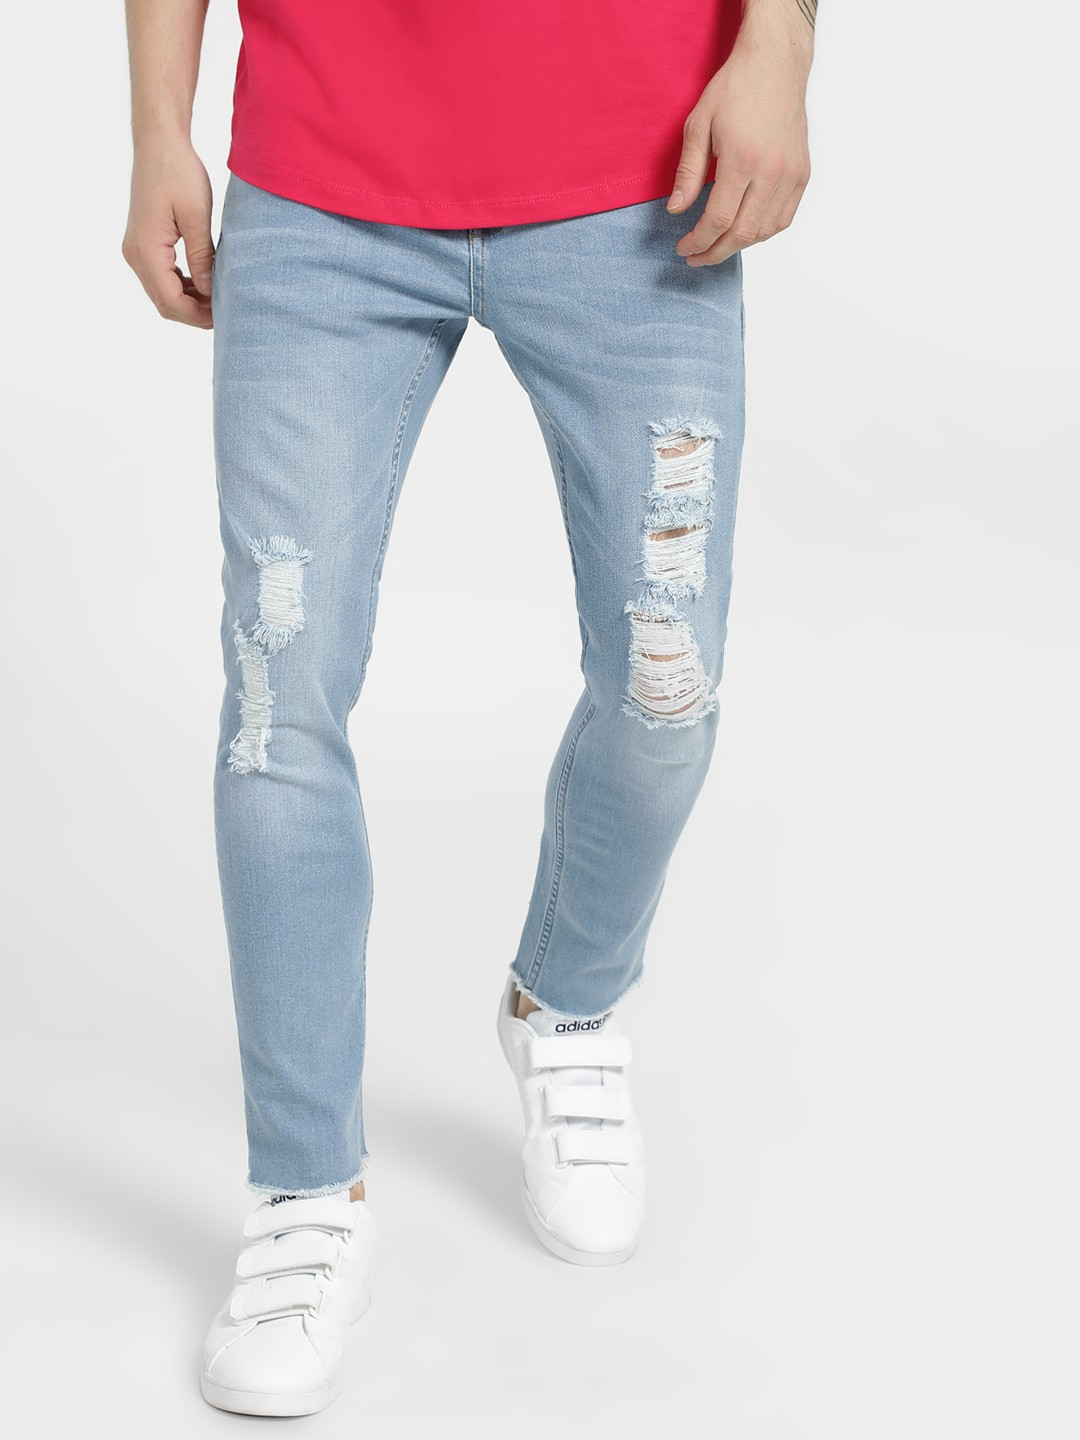 X.O.Y.O Blue Distressed Light Wash Slim Jeans 1